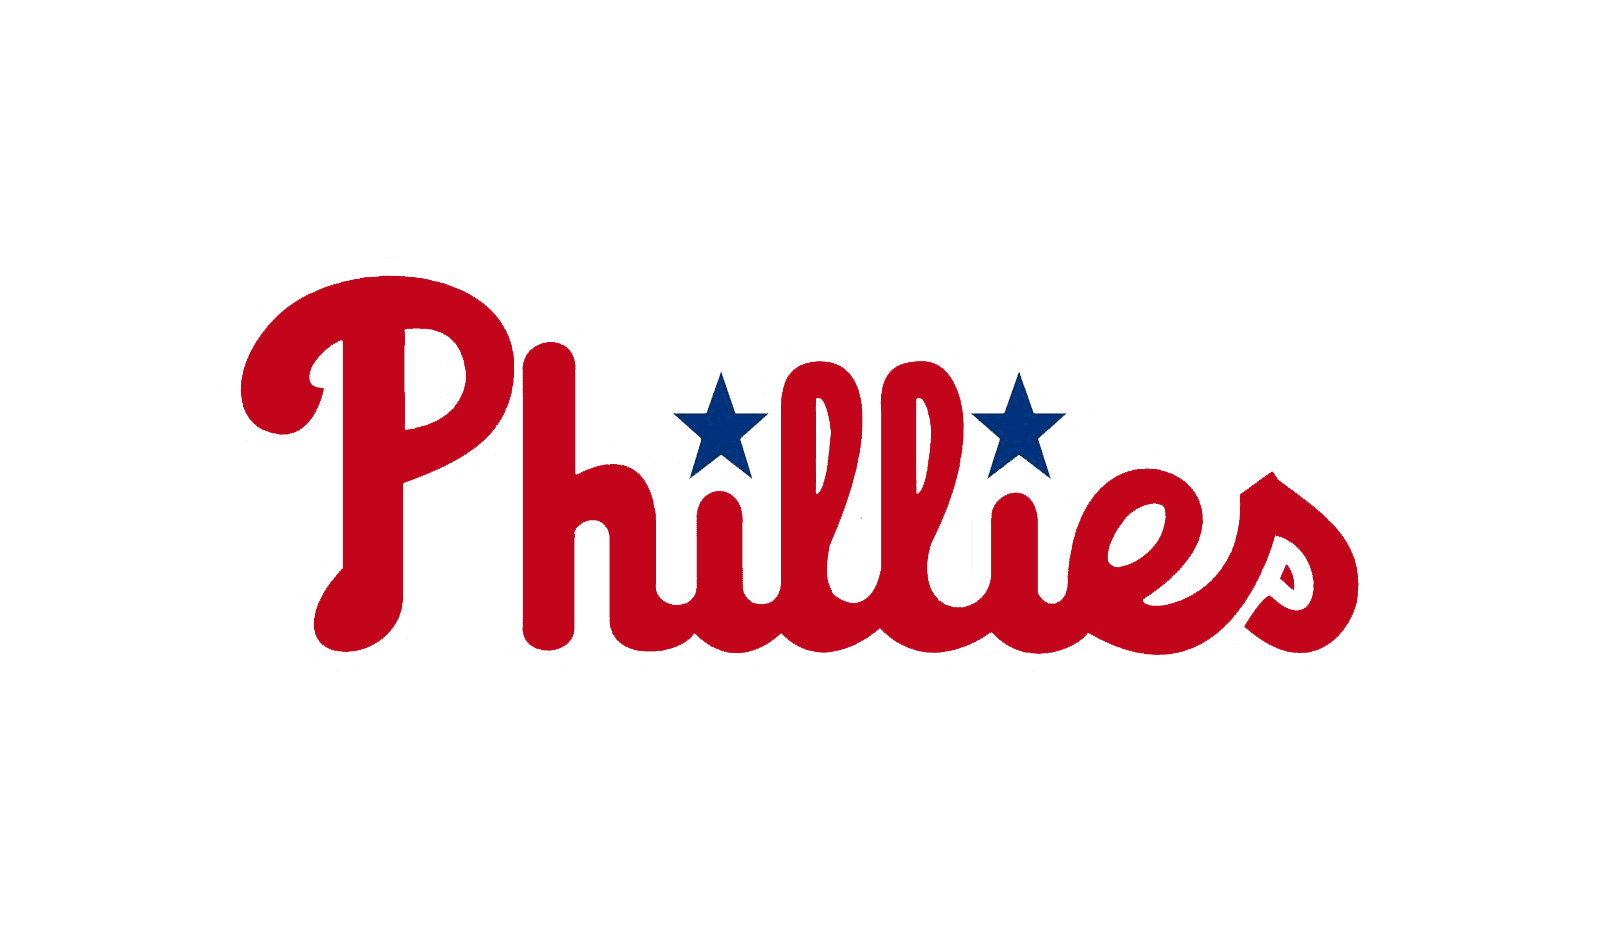 the phillies will not make the playoffs u2022 the game haus rh thegamehaus com